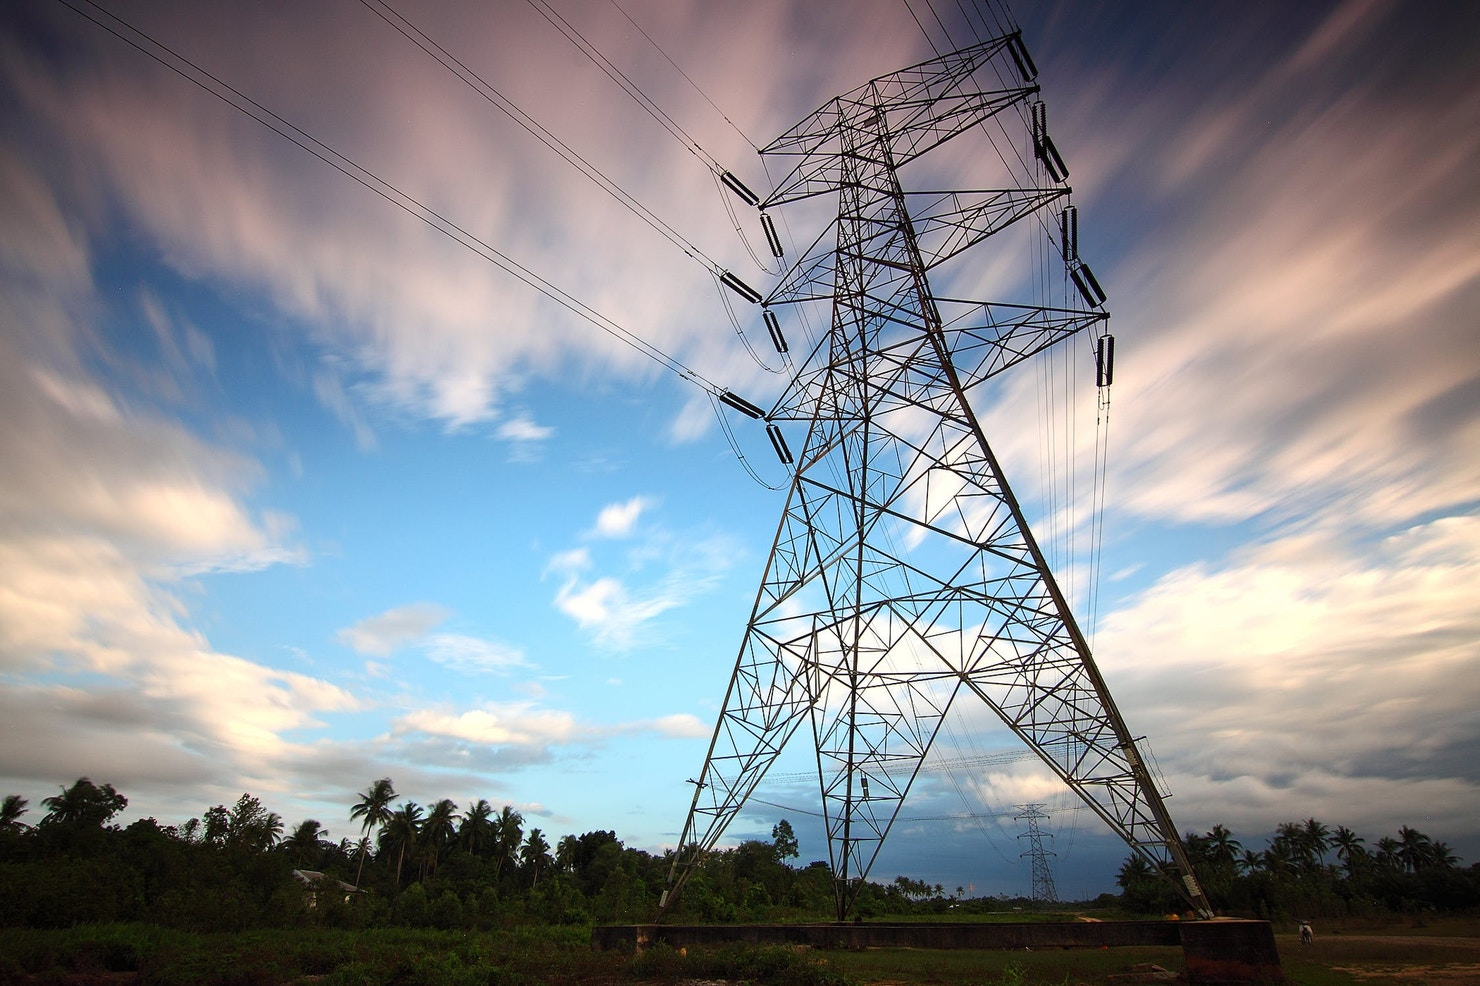 Pinergy set to increase domestic electricity costs by 2.7%